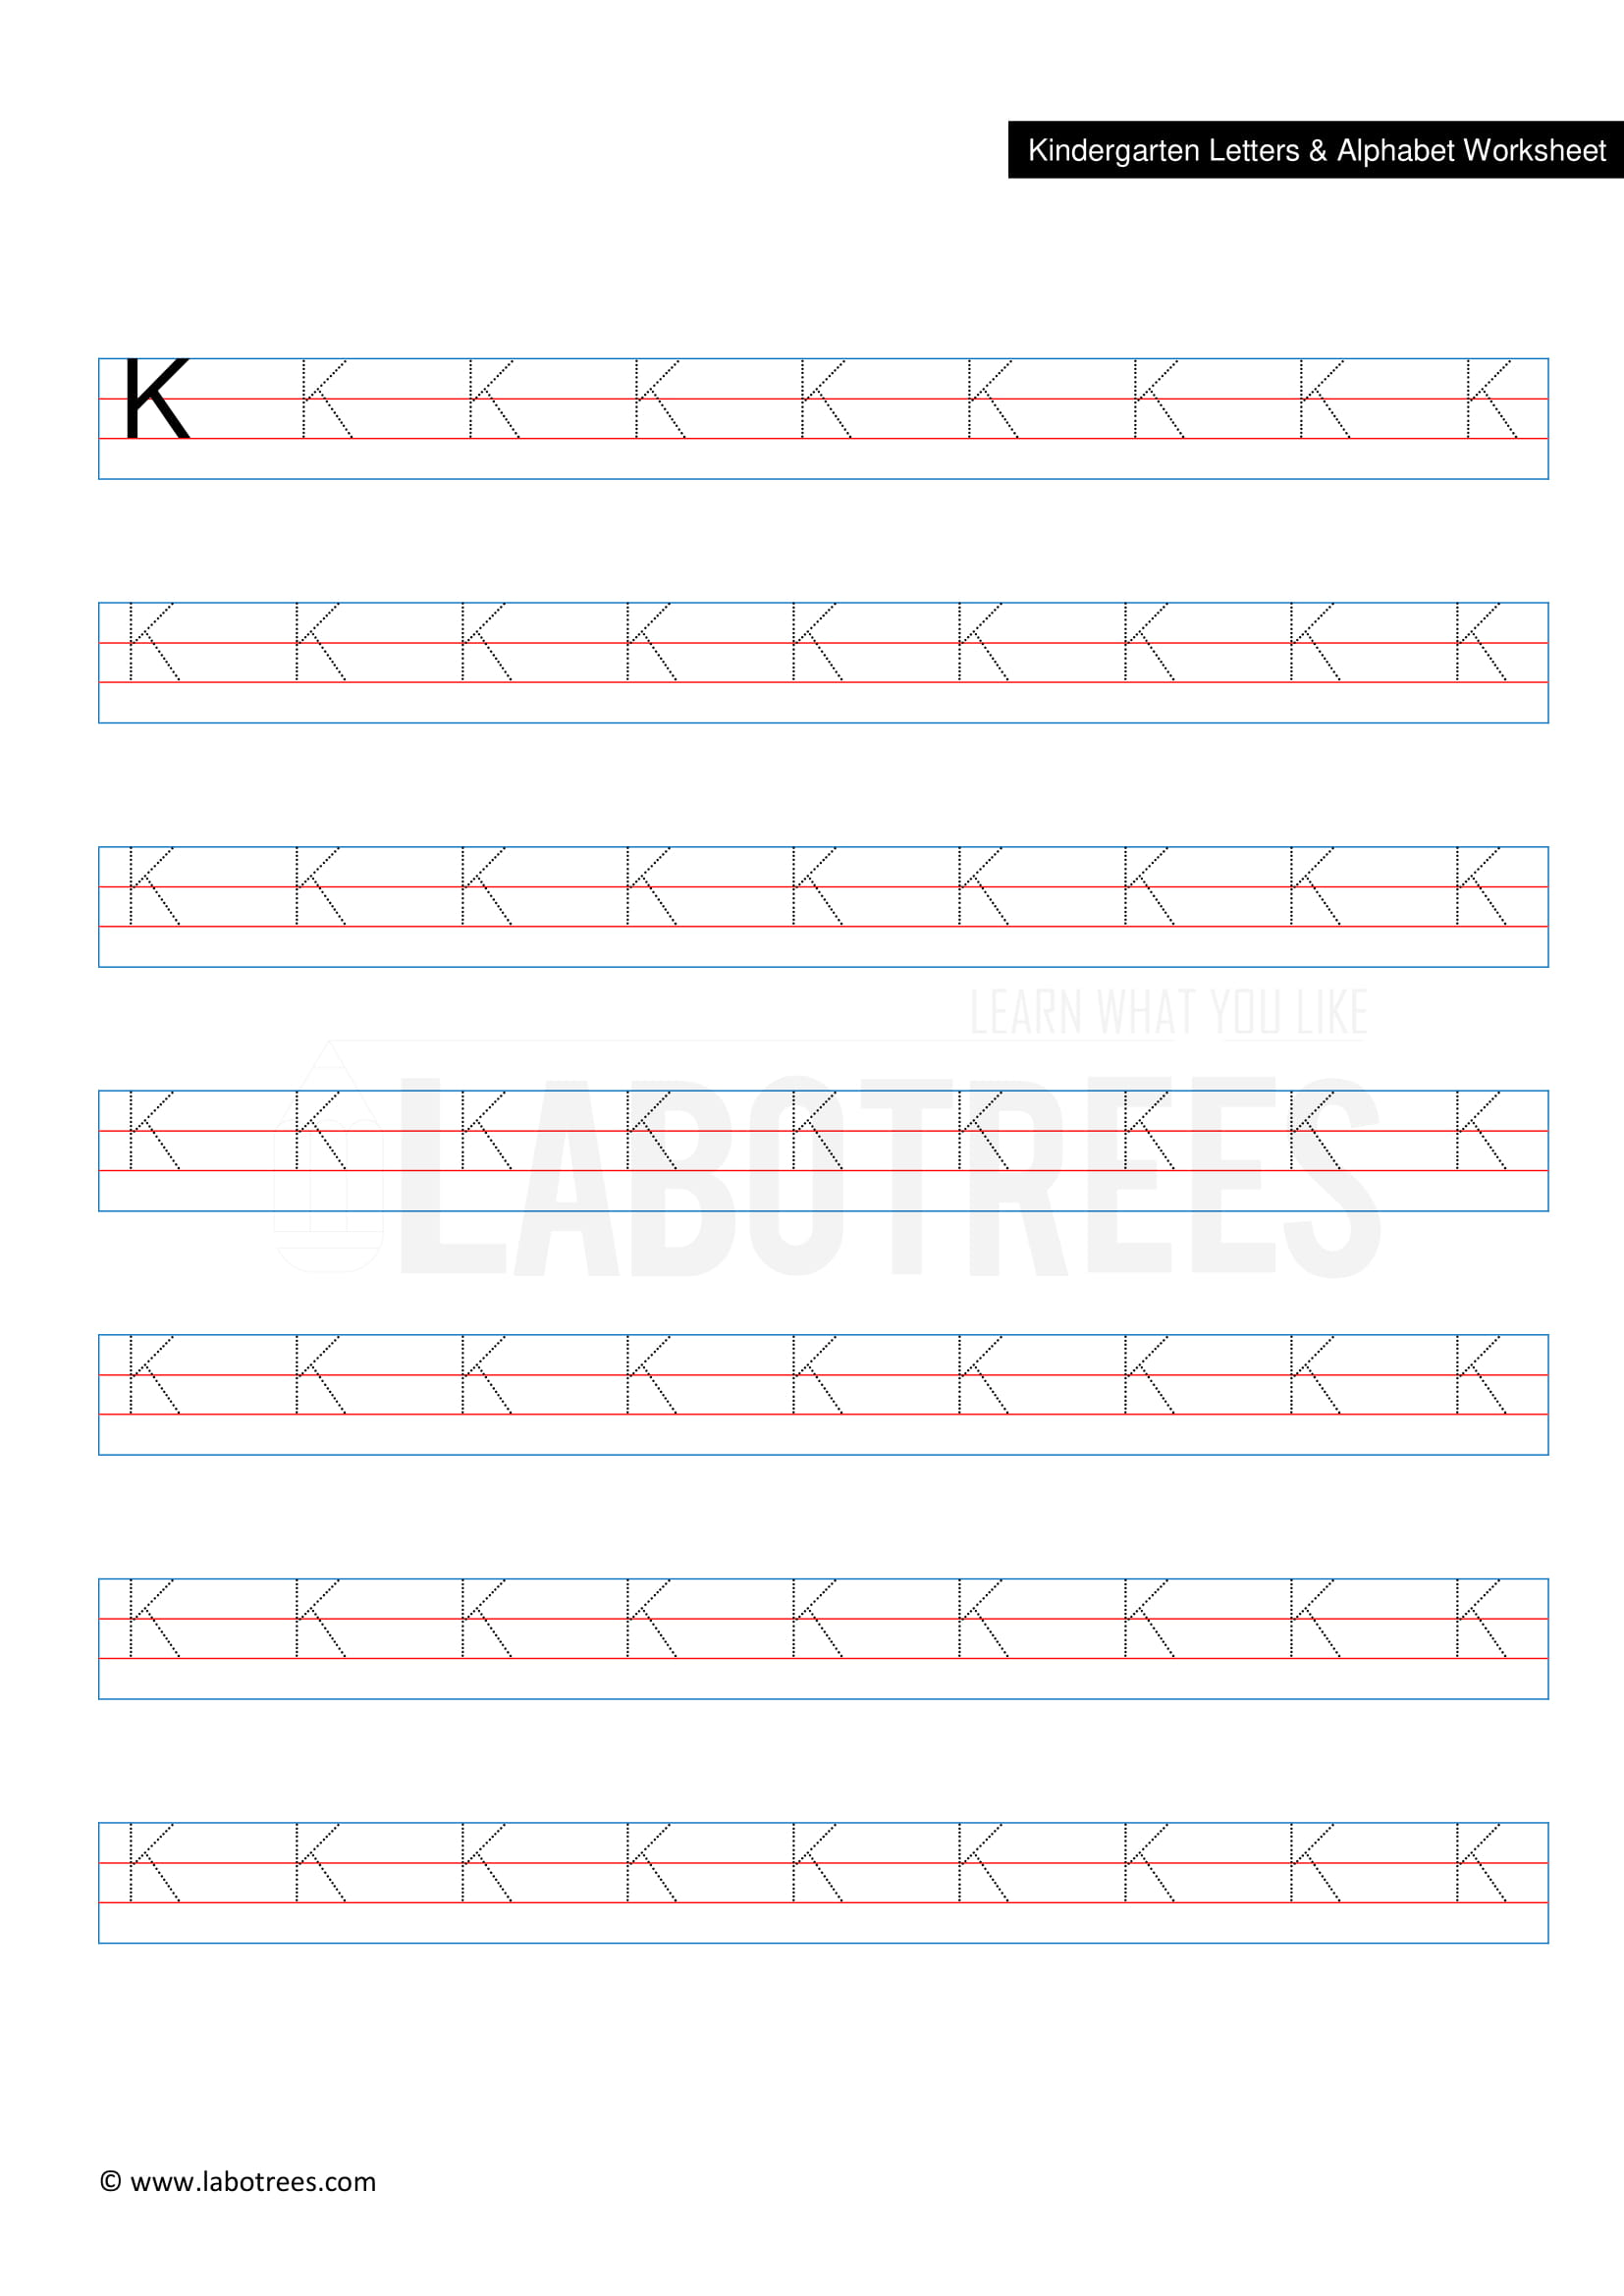 Worksheet Of Letter K Uppercase Free Download